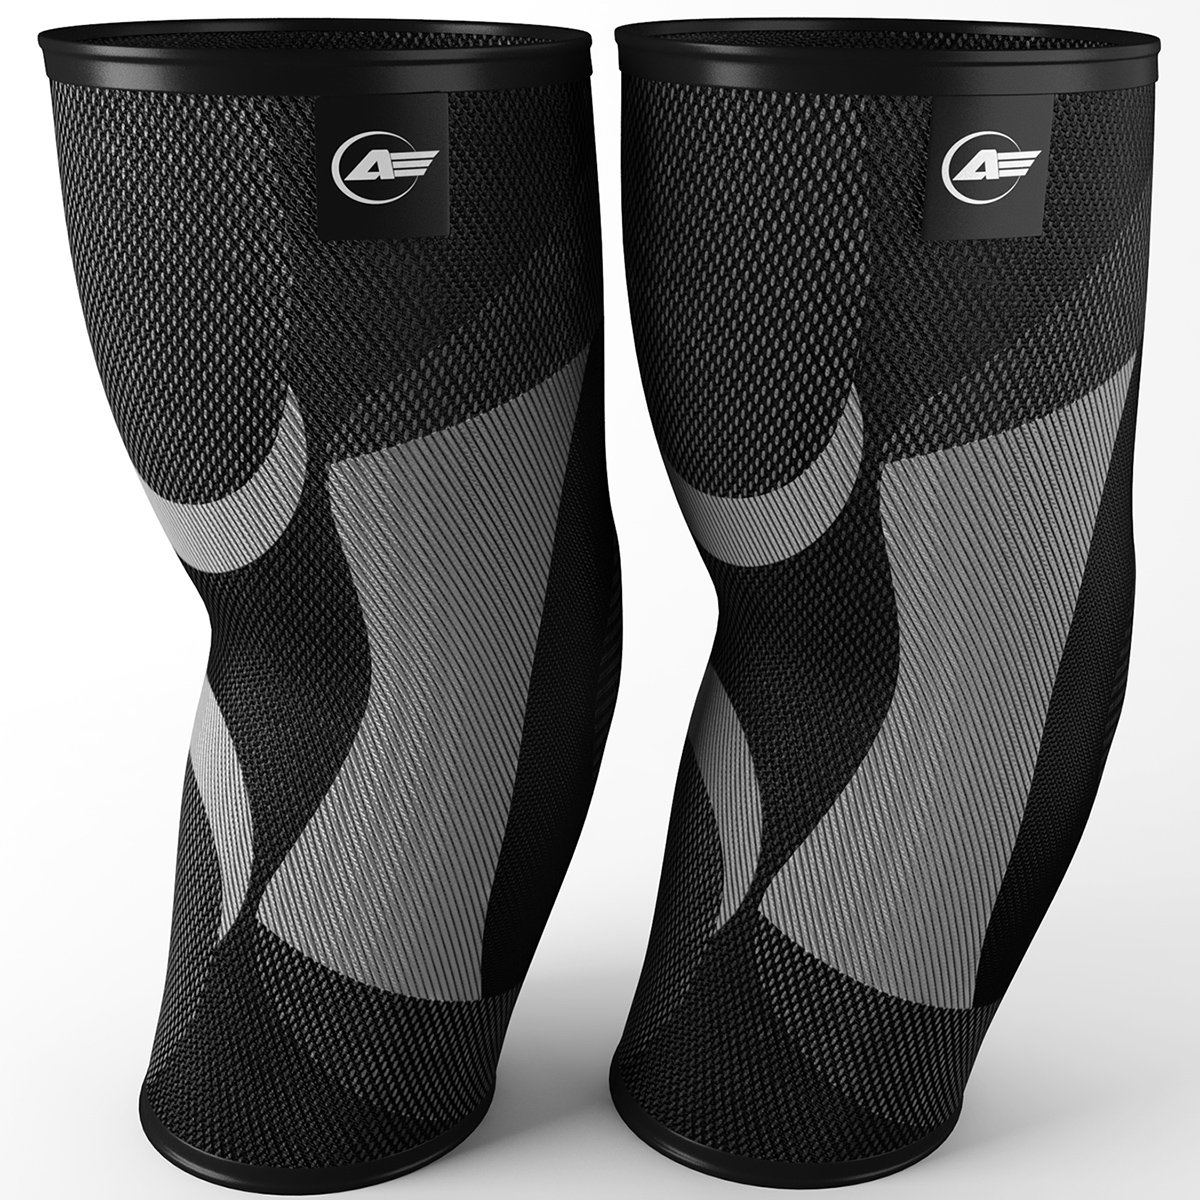 Elbow Compression Sleeve Arm Brace Pair | Support for Tendonitis, Golfers Elbow, Tennis Elbow, Joint Pain Relief, Workout Protection - Alpha Lifting Gear